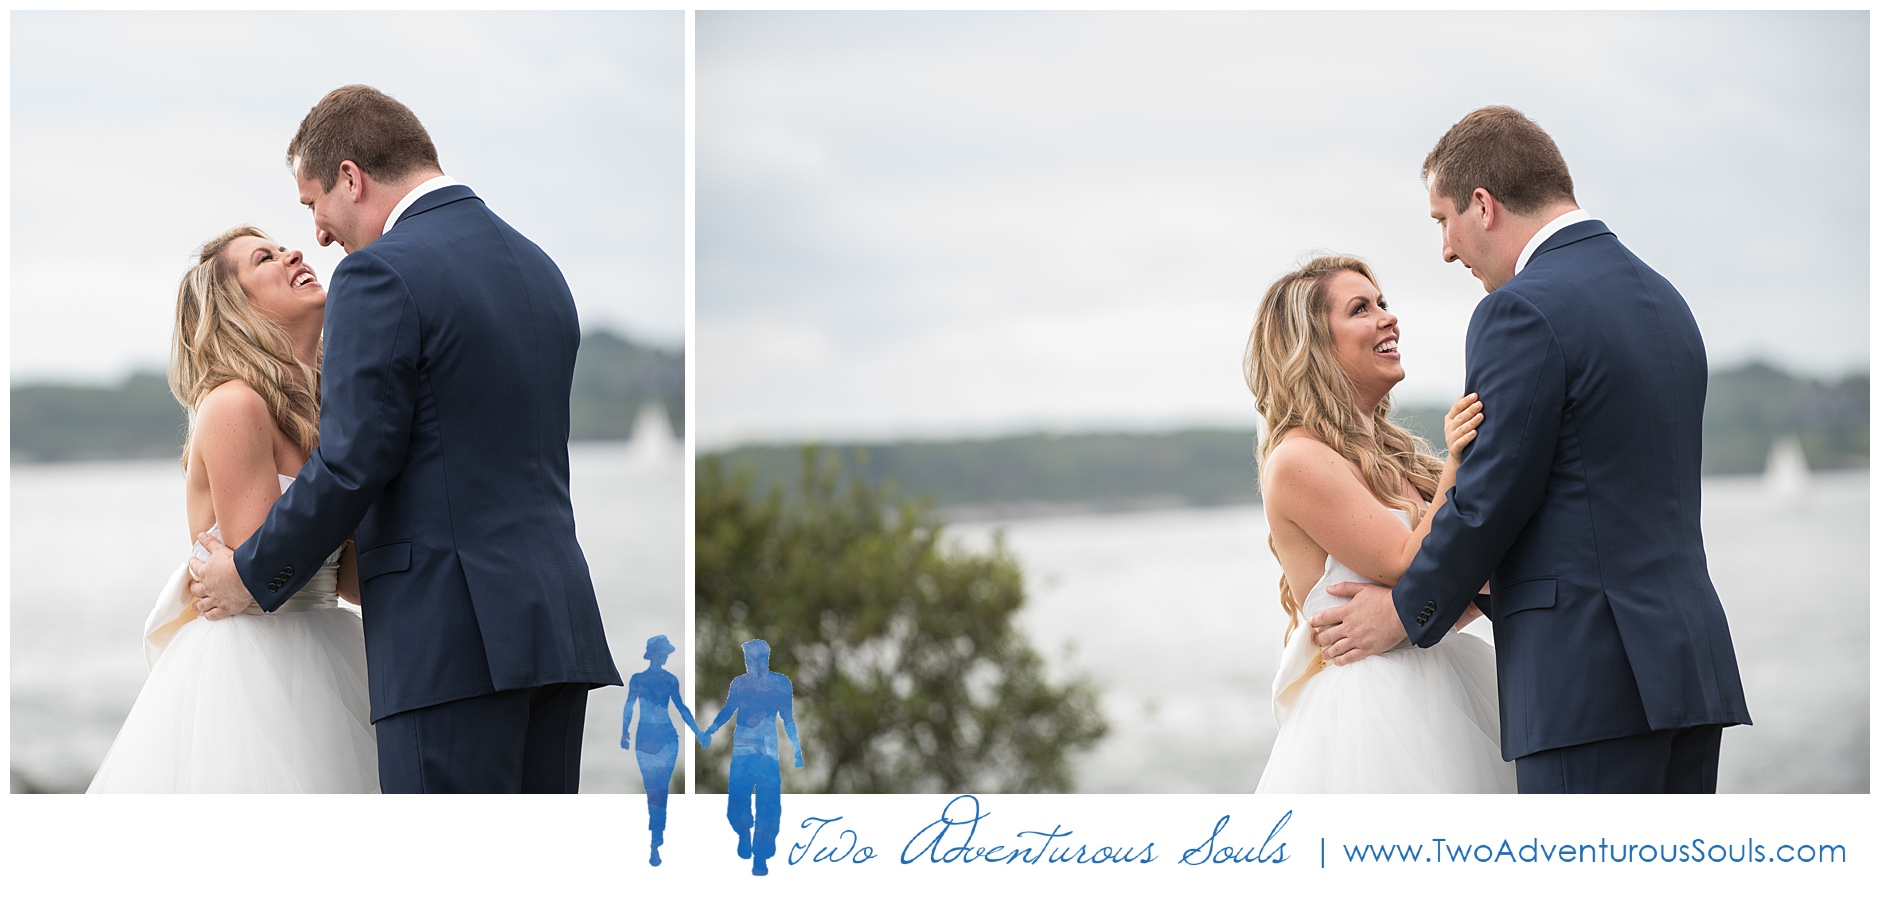 First Look by Rhode Island Wedding Photographers, Two Adventurous Souls 040919_0033.jpg